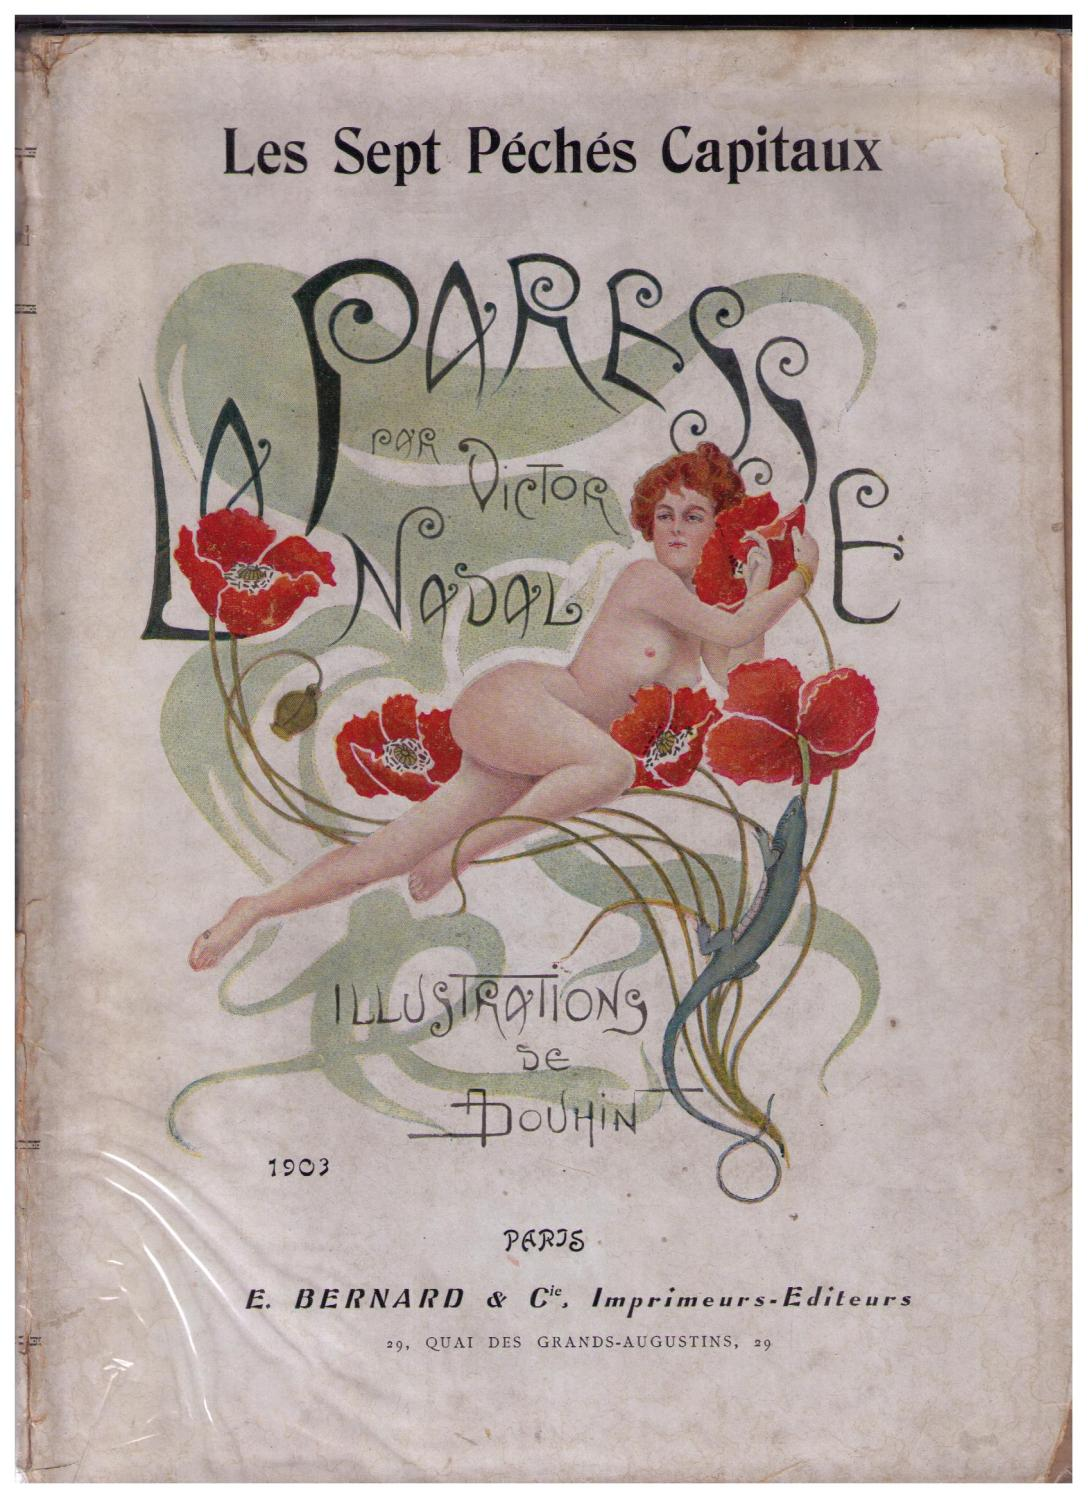 André Douhin's cover illustration for 'La Paresse' by Victor Nadal. Published by E. Bernard et Cie., 1903